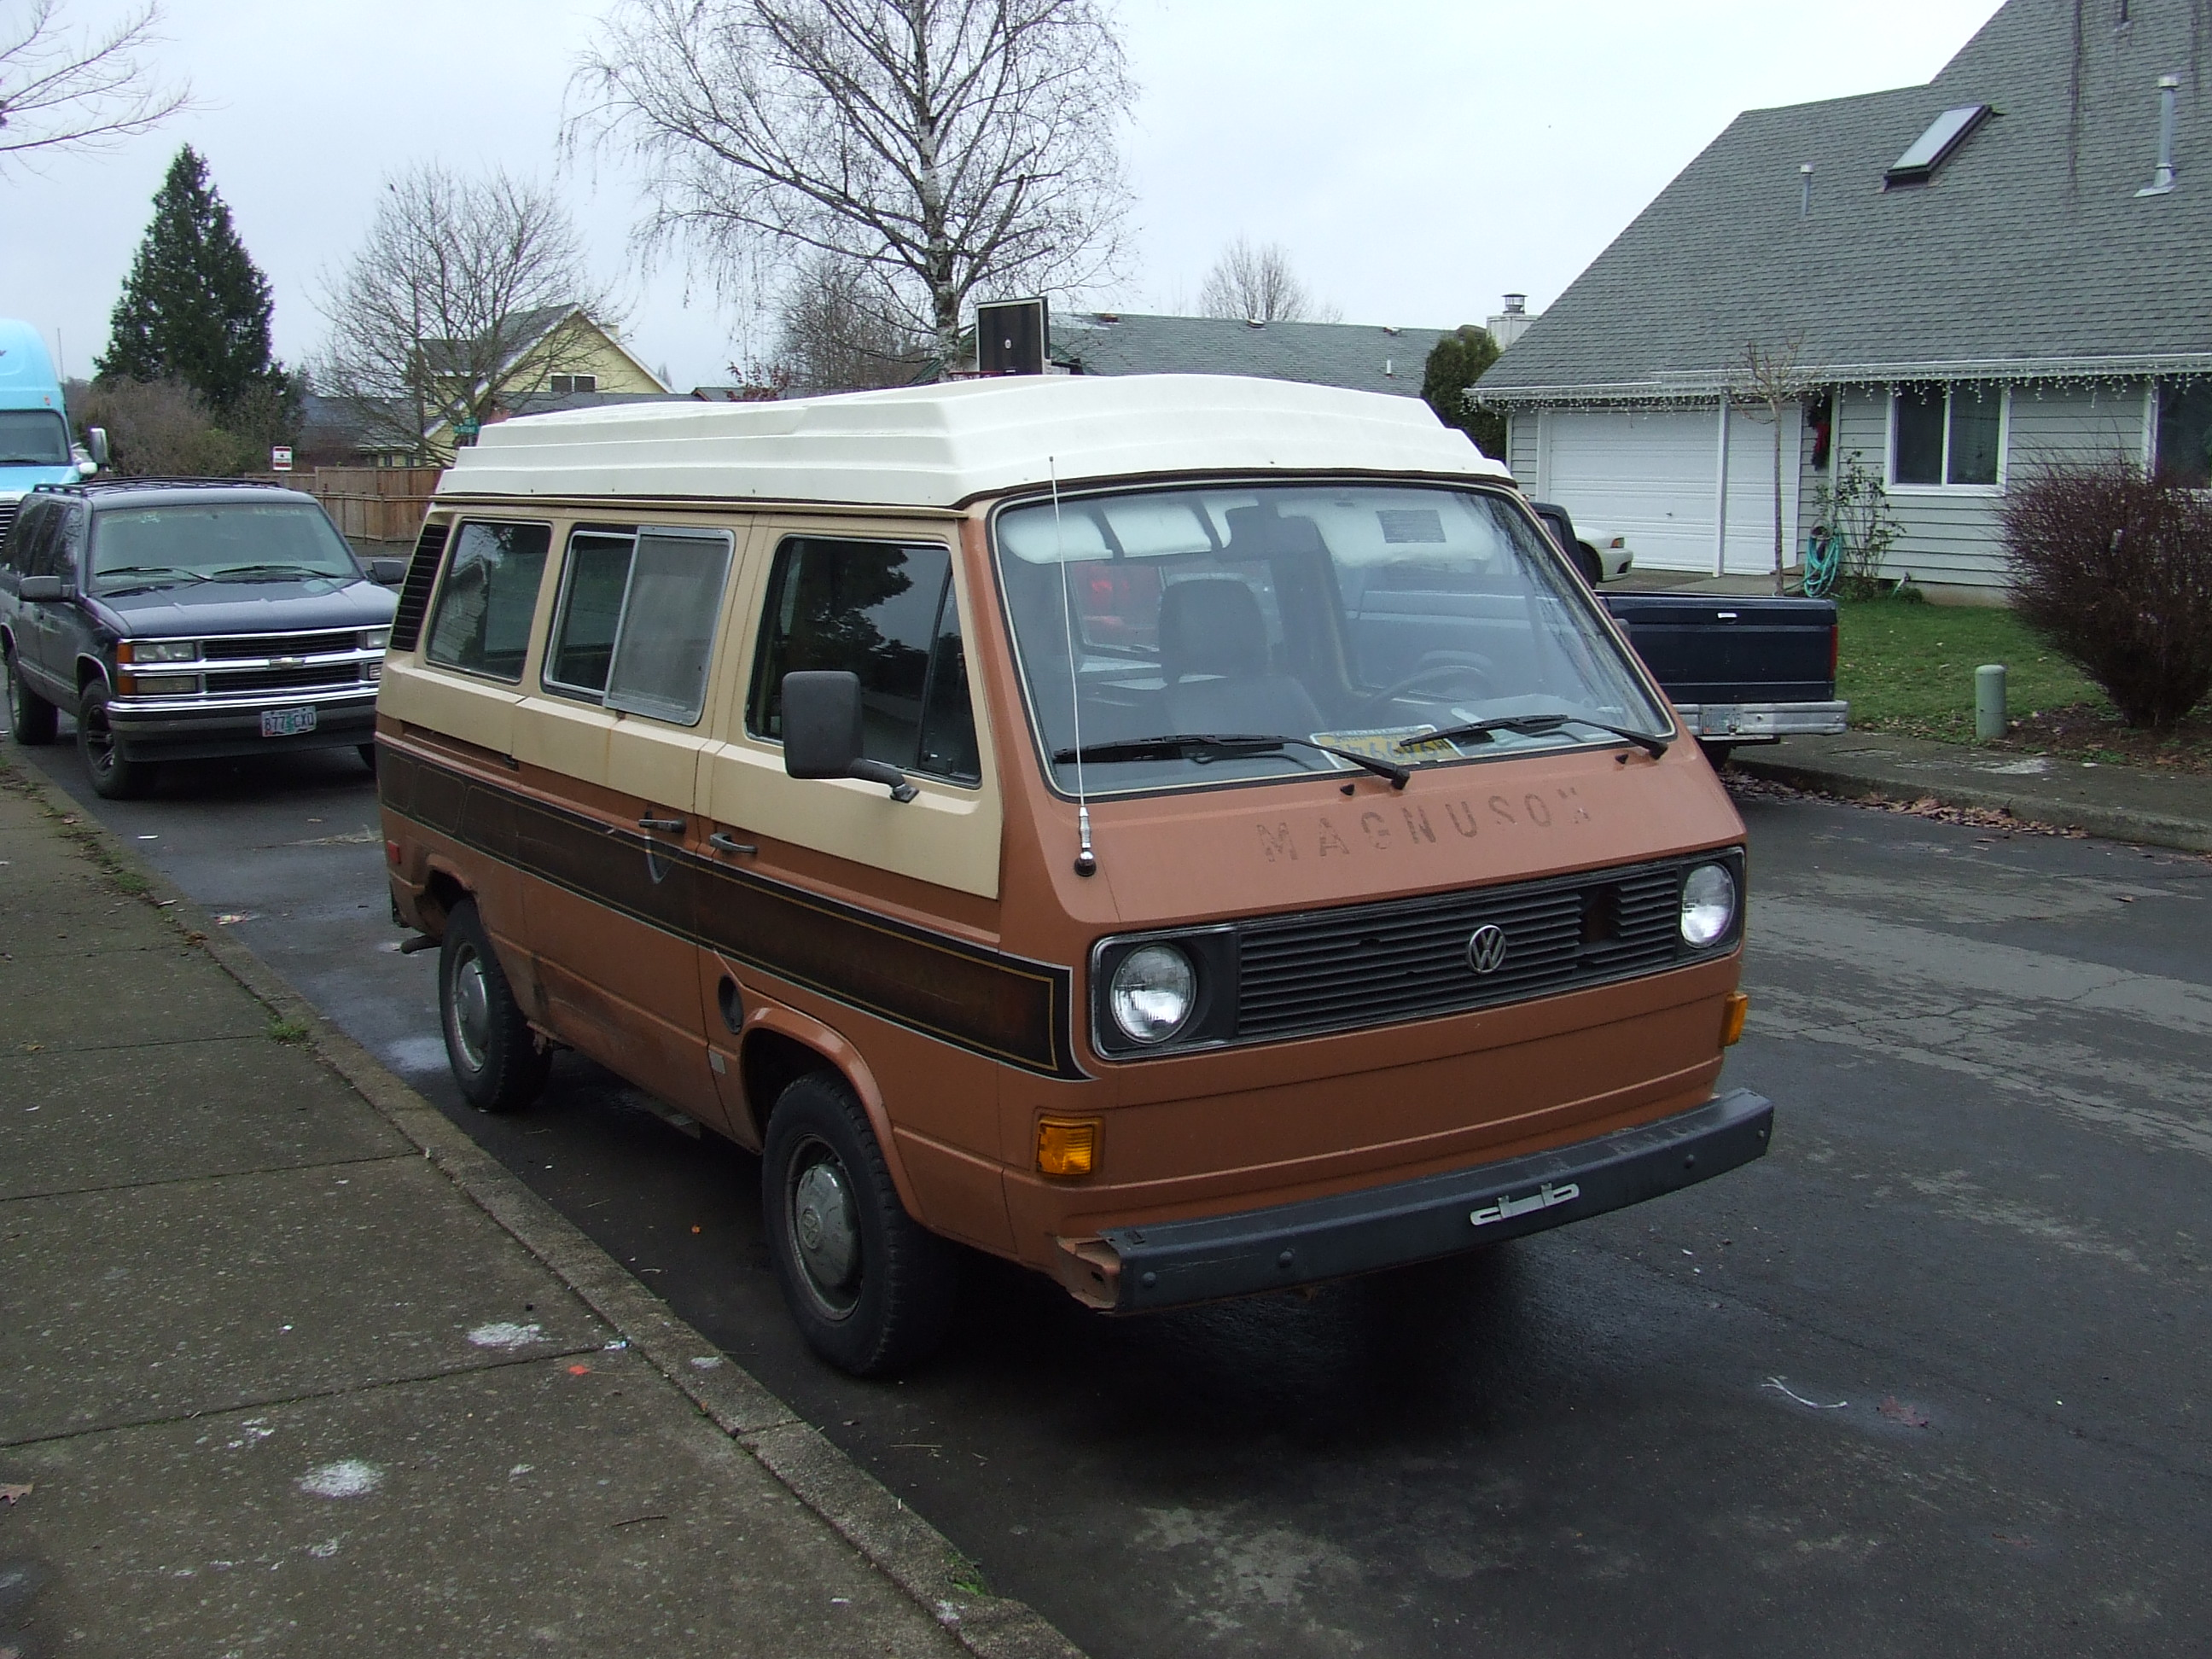 The Van Was A 1980 Still Air Cooled ASI Riviera Camper It Pretty Beat Up On Outside But Interior Very Nice